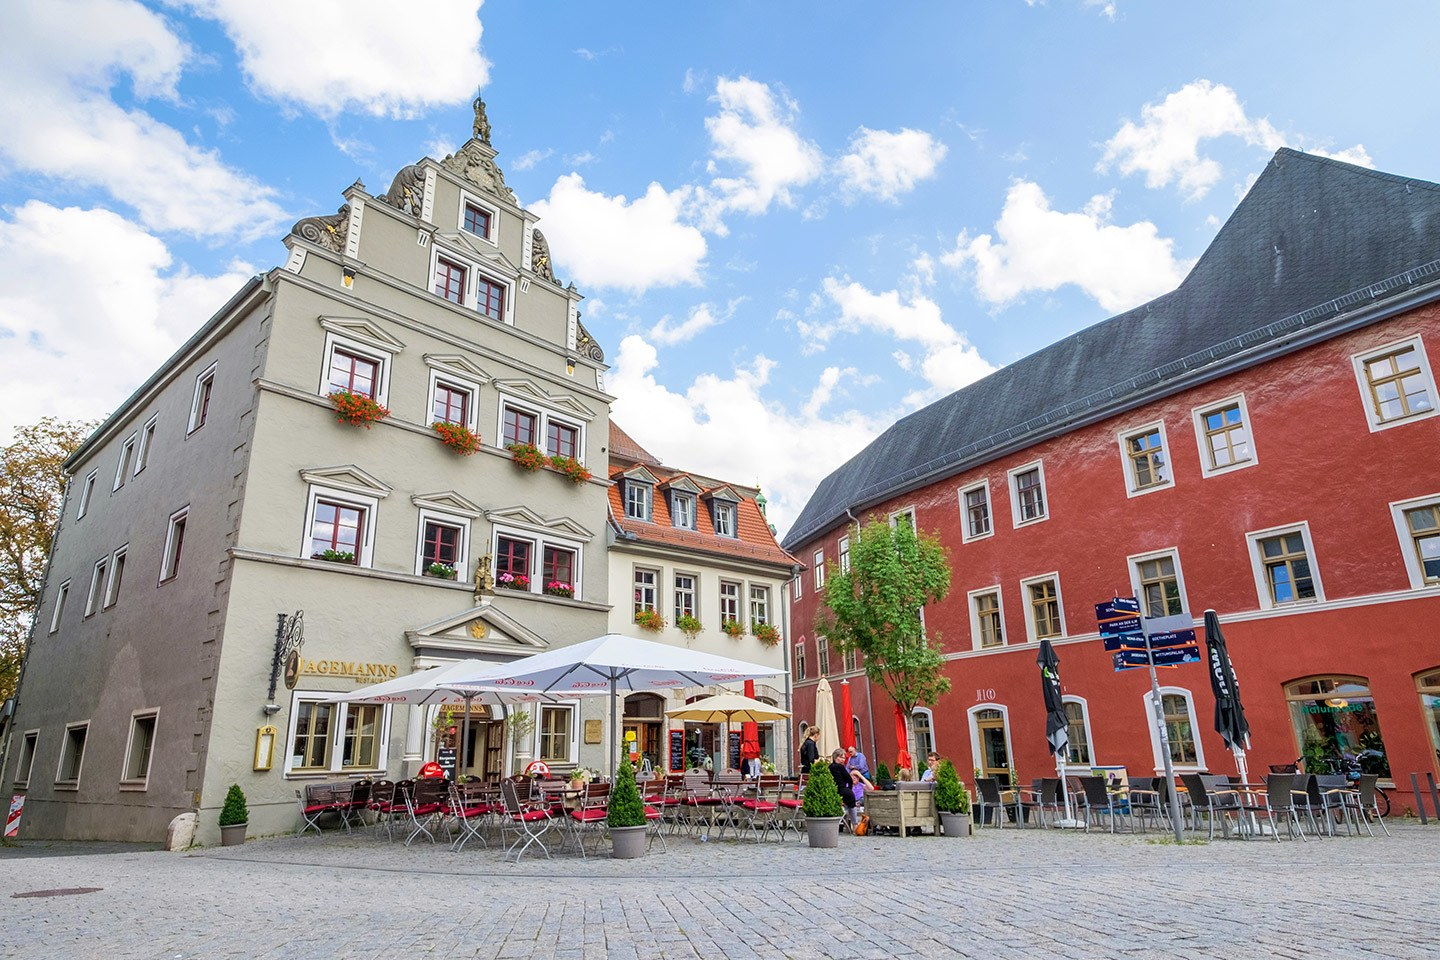 Cafes in Weimar, Germany